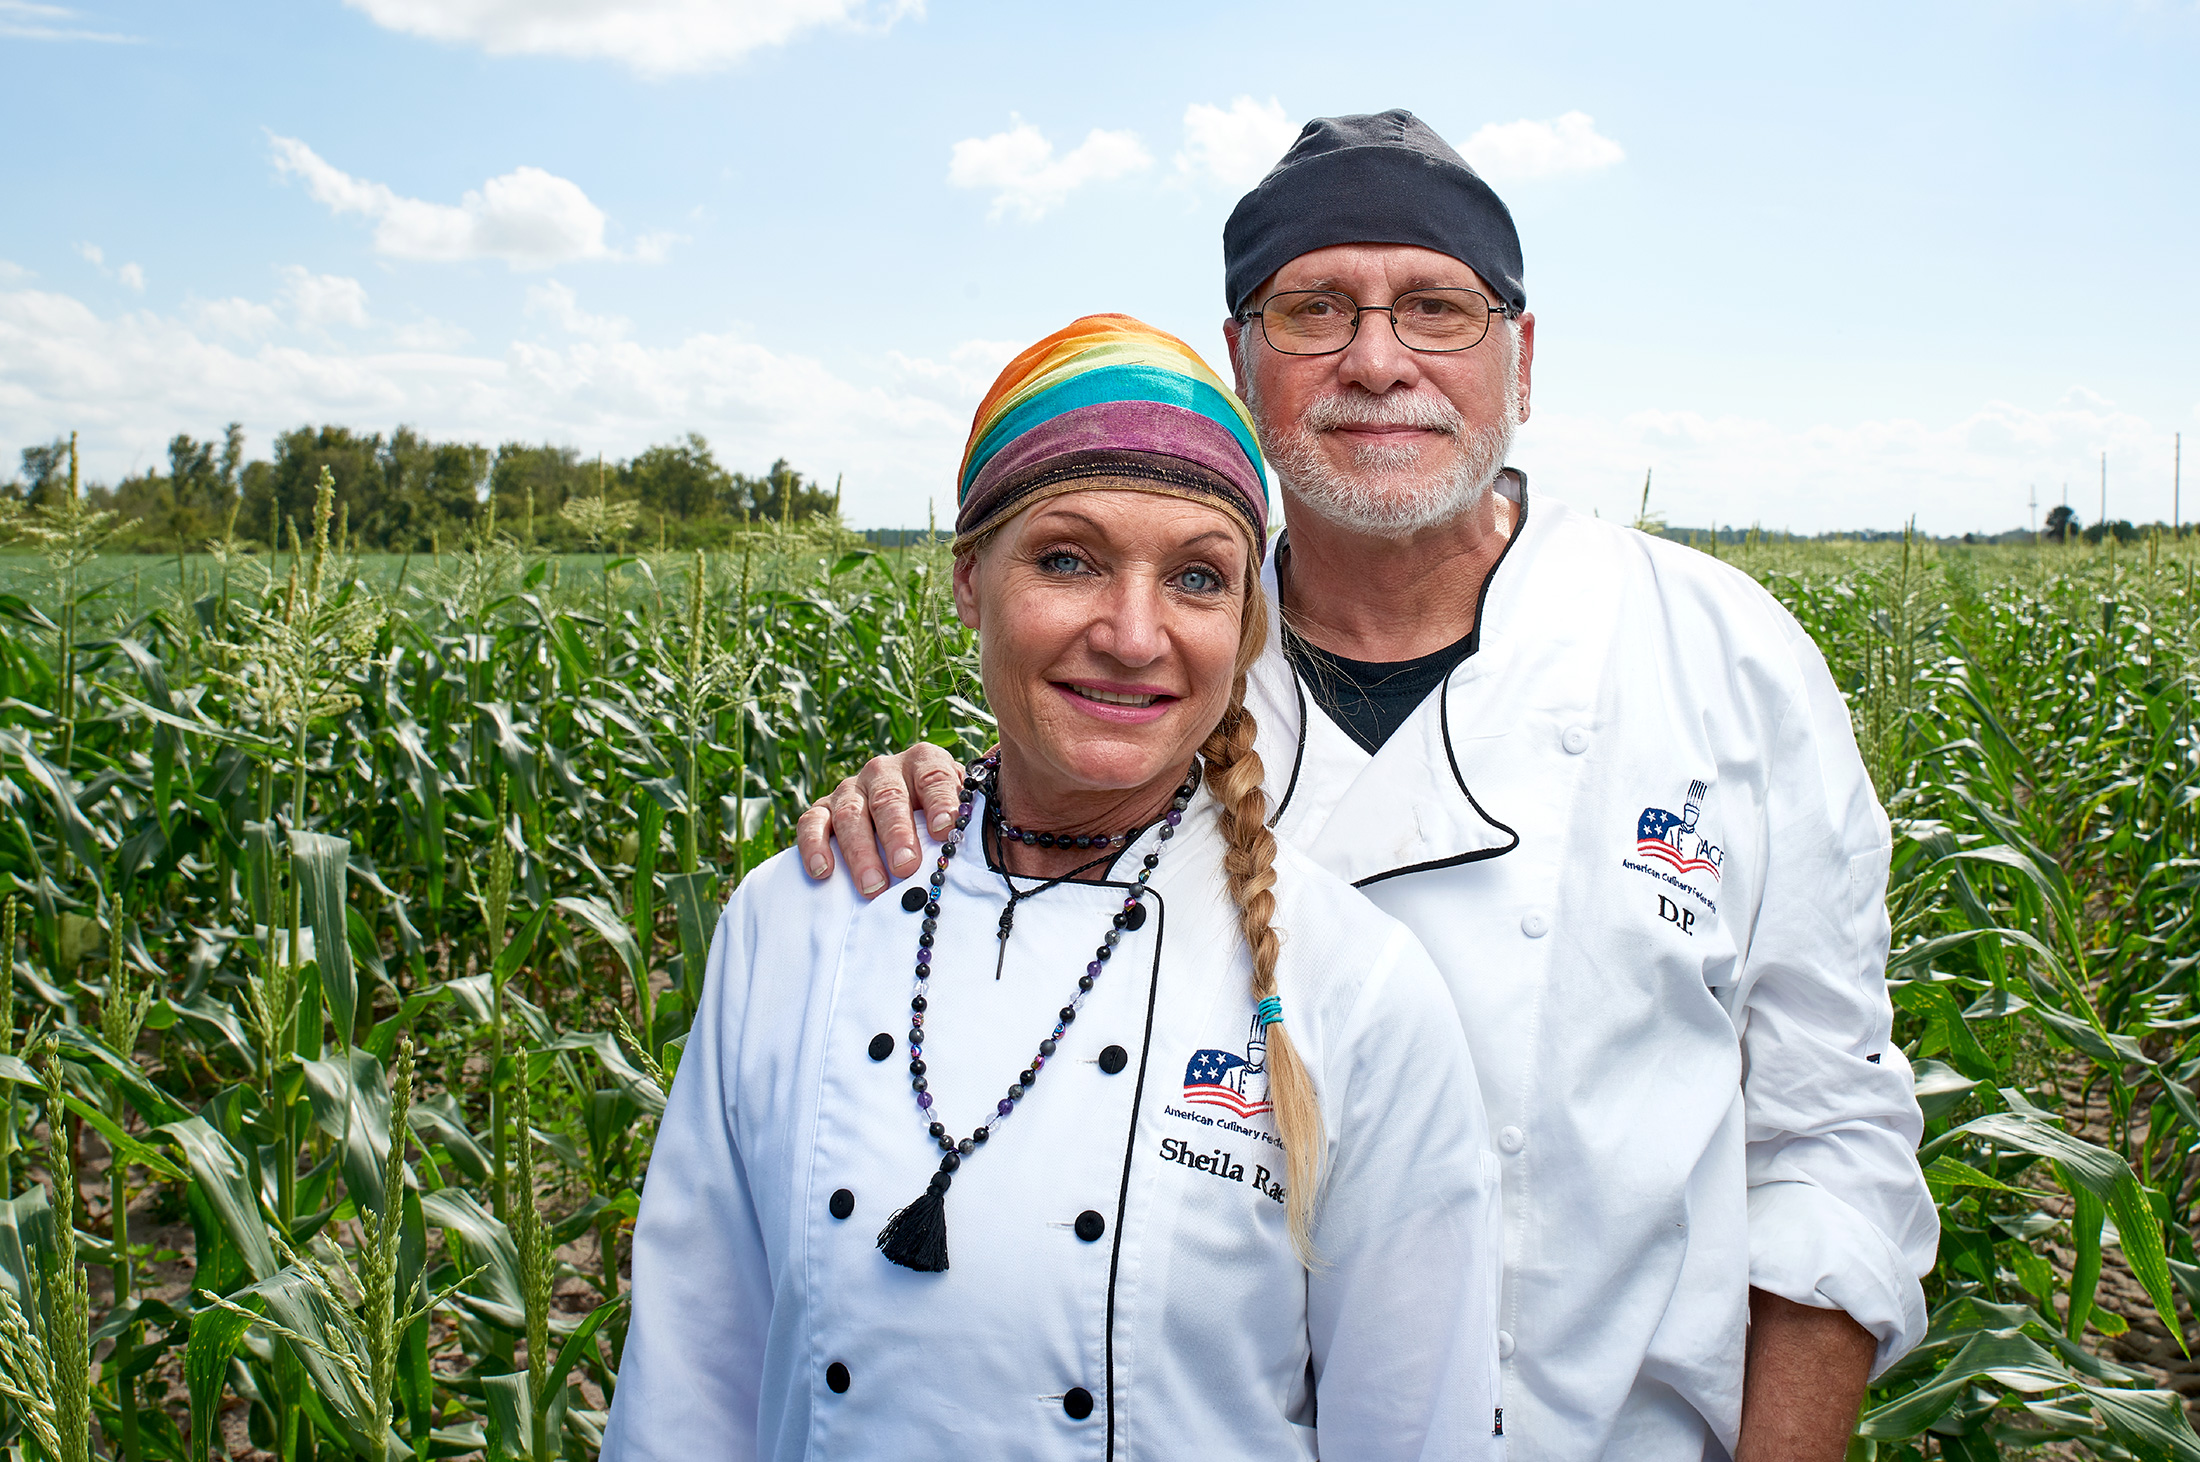 chef_life_farm_corn_commercial_portrait_photographer